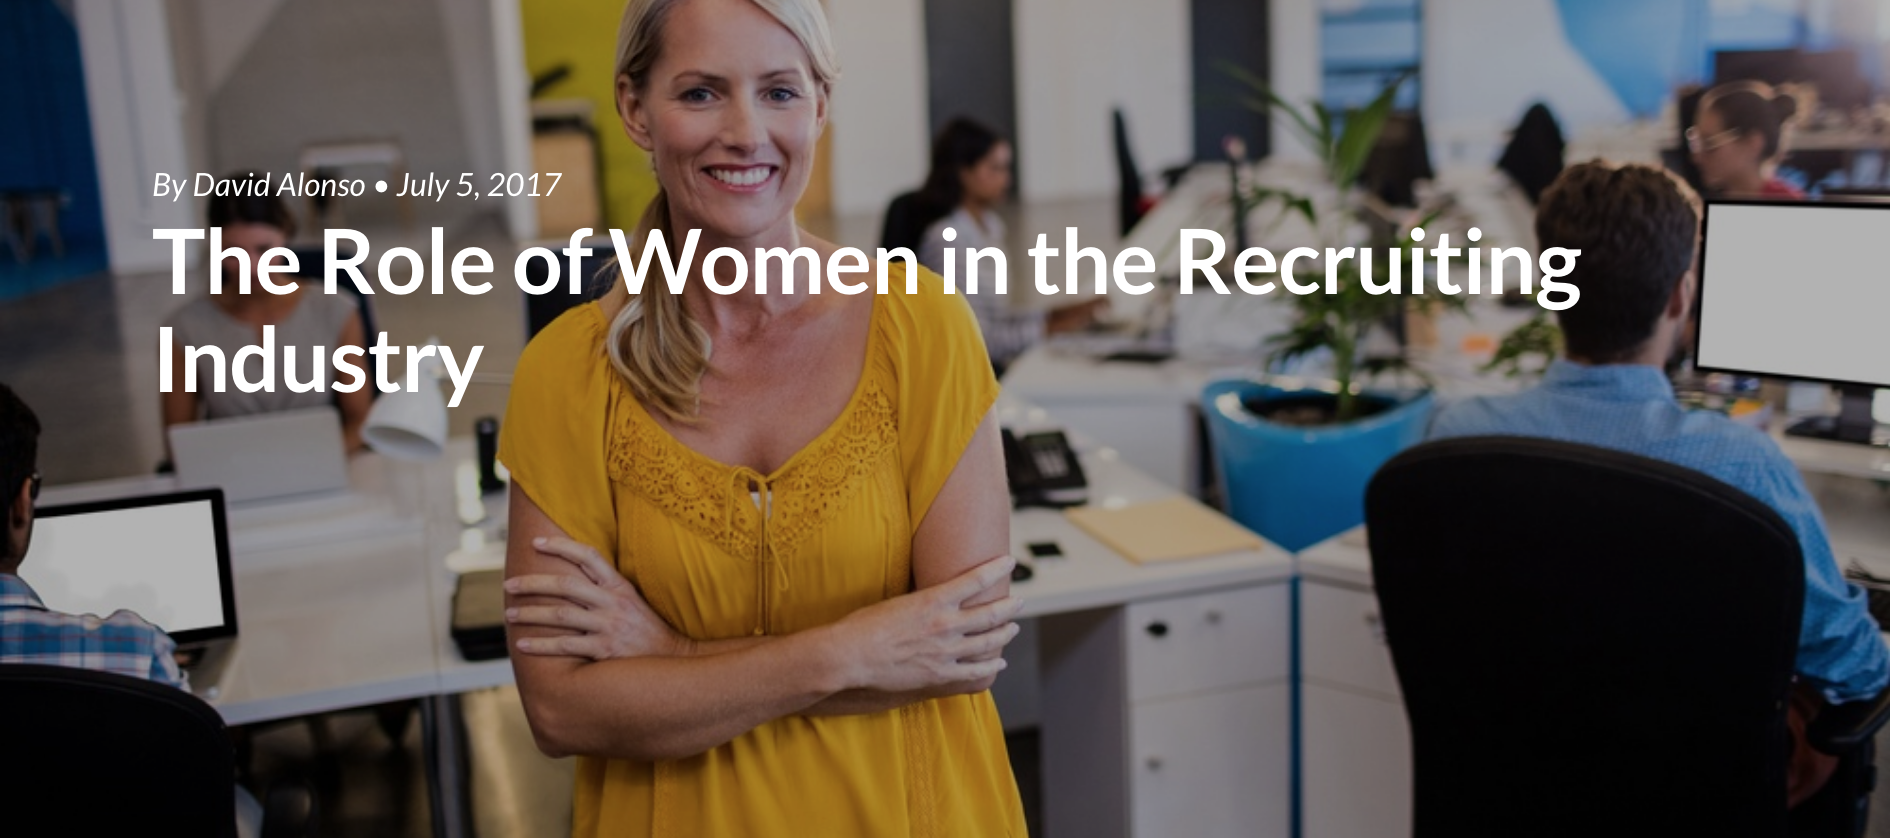 The Role of Women in the Recruiting Industry